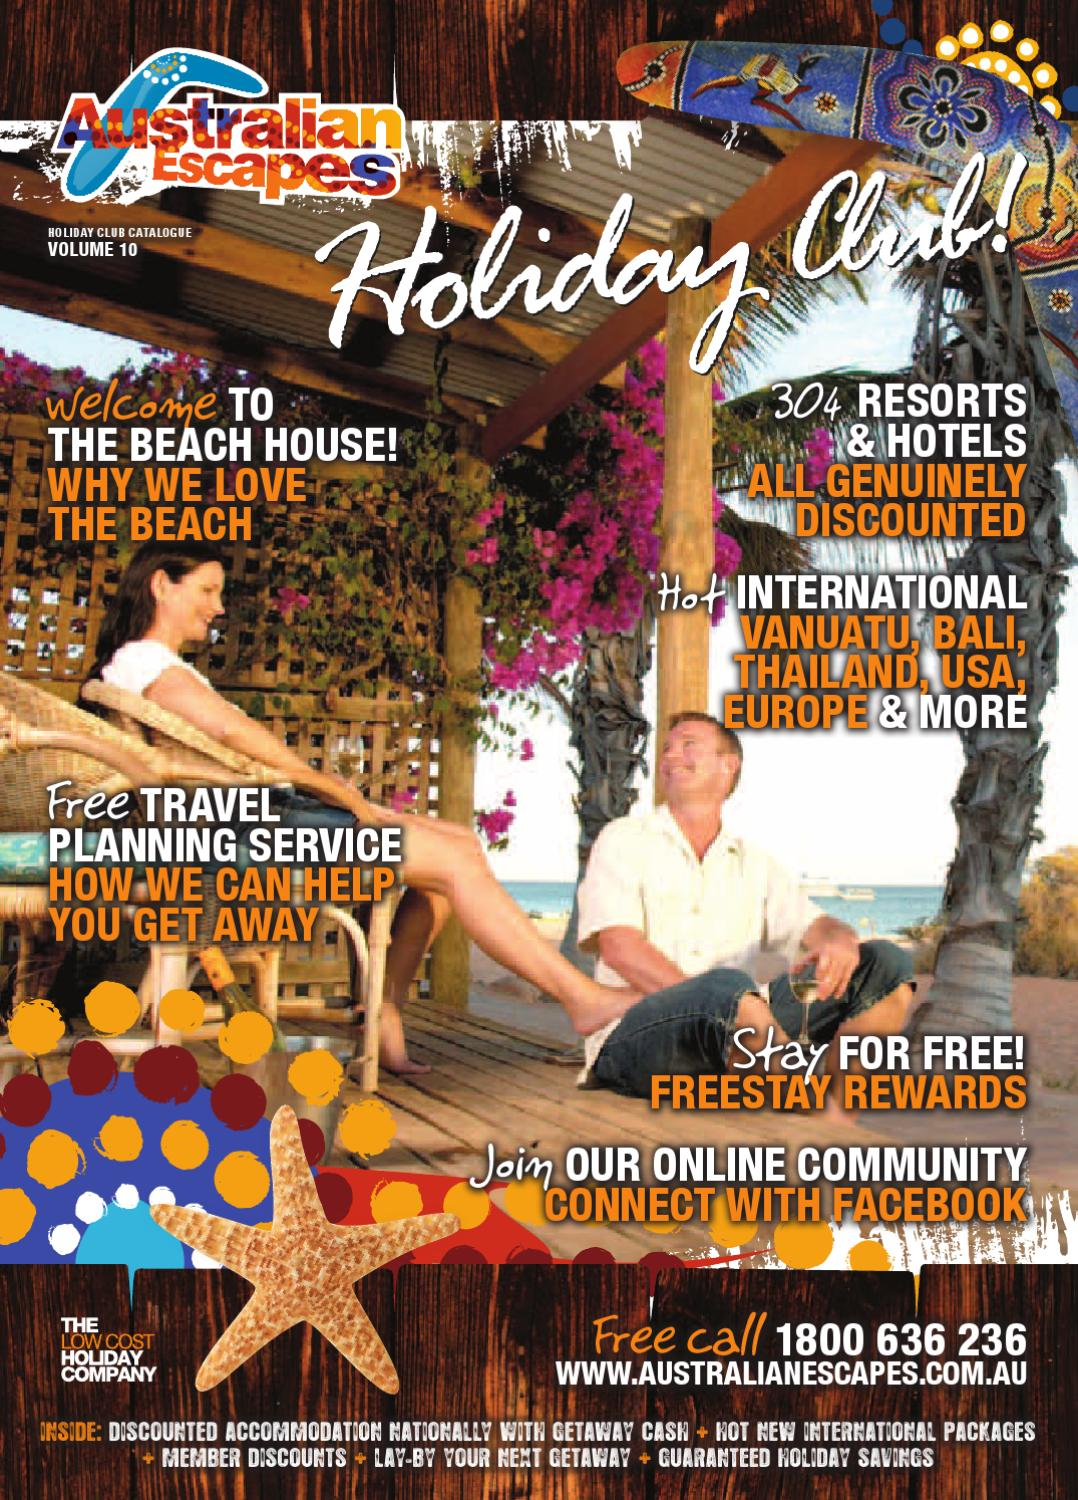 Australian Escapes Holiday Club Catalogue - Volume 10 by Australian ...